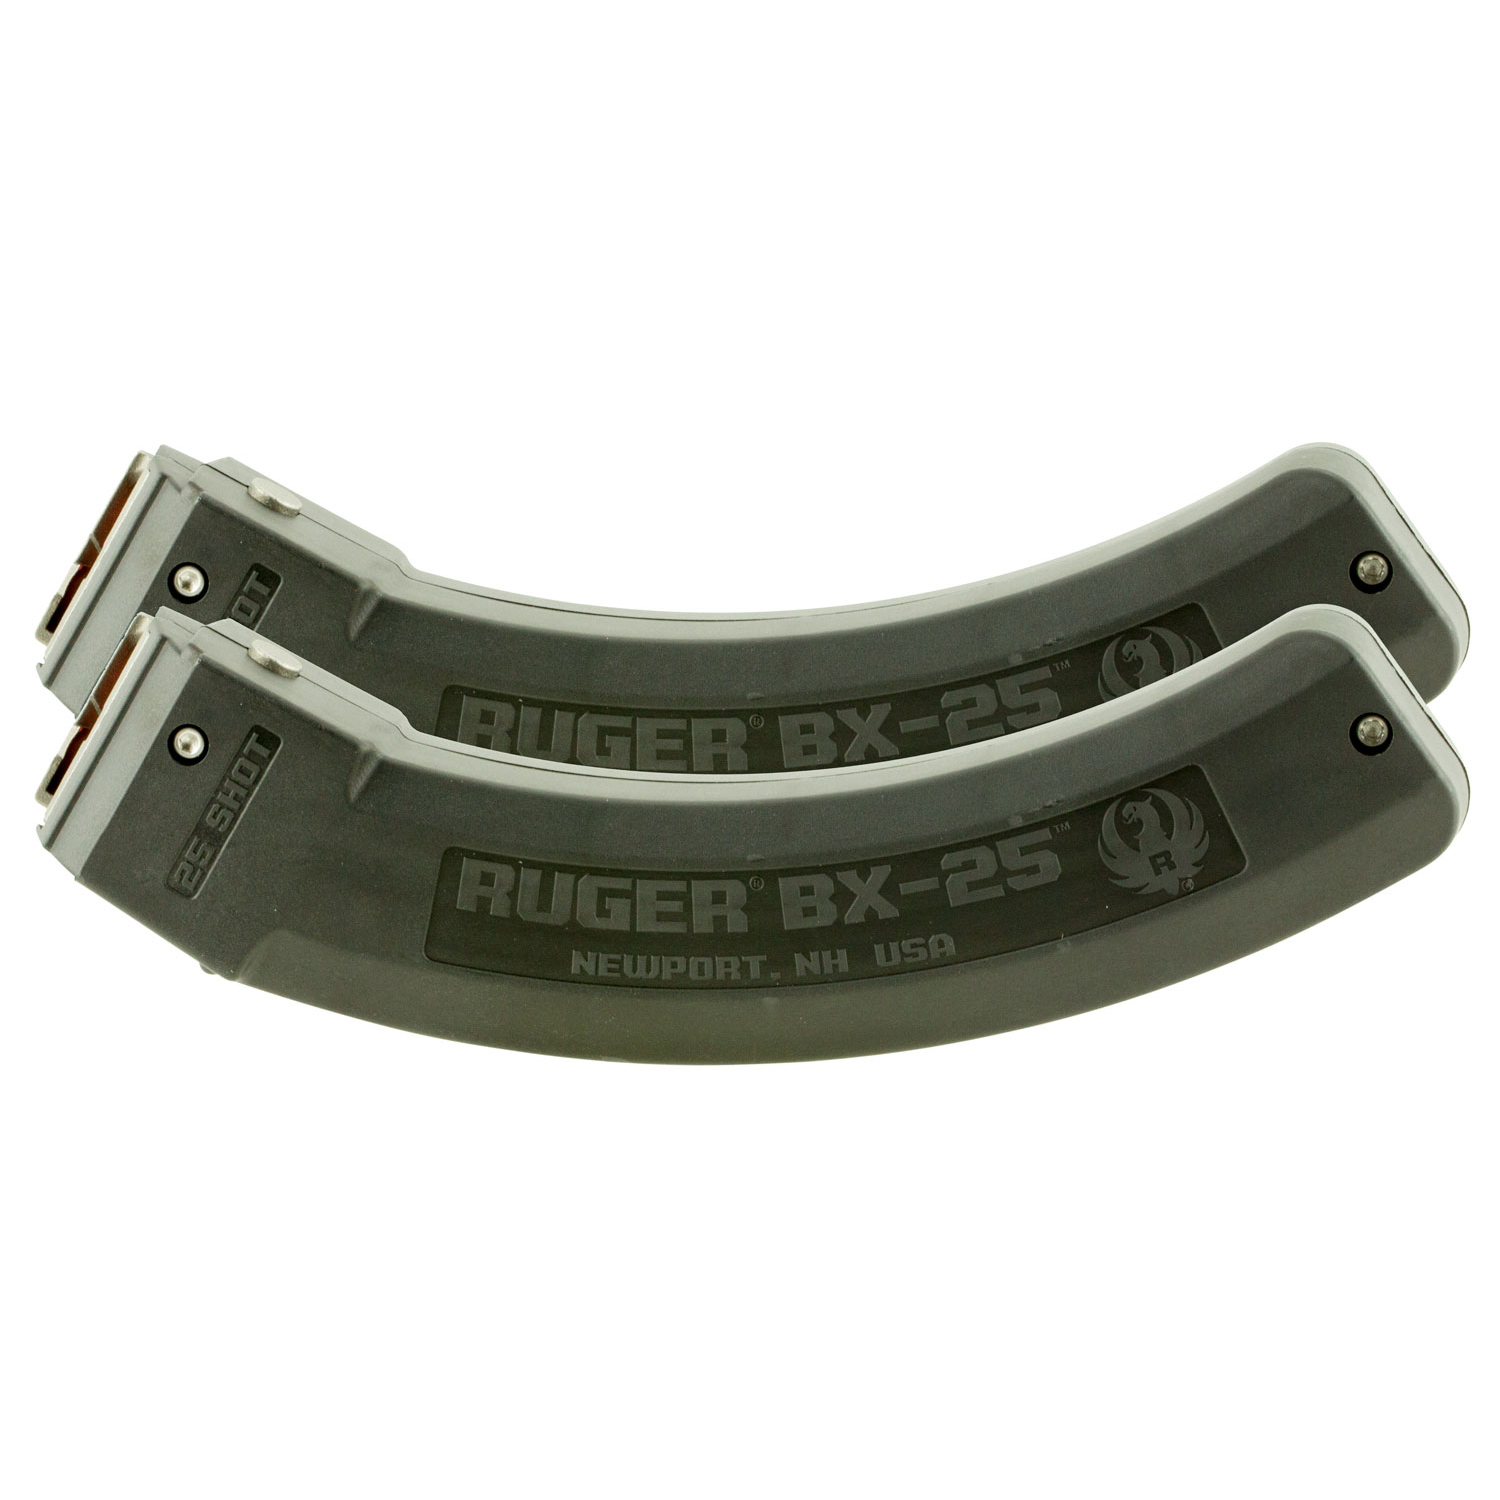 Ruger BX-25 Series 10/22 Magazine, 2-Pack